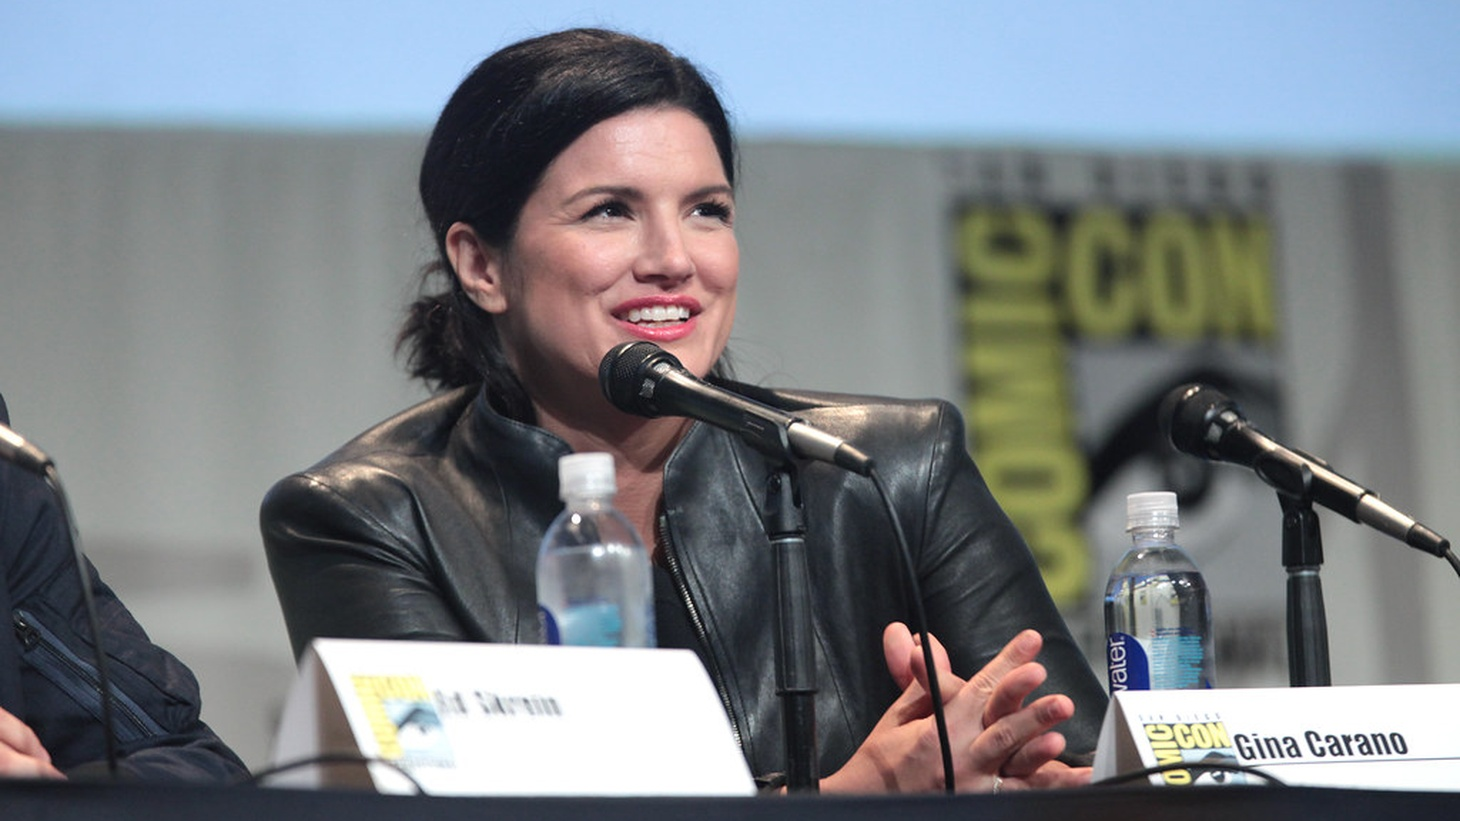 """Gina Carano is part of a recent wave of talent dropped by their agencies for troubling behavior. In Carano's case, """"The Mandalorian"""" actress made offensive posts on social media comparing Republicans to Jews in Nazi Germany."""